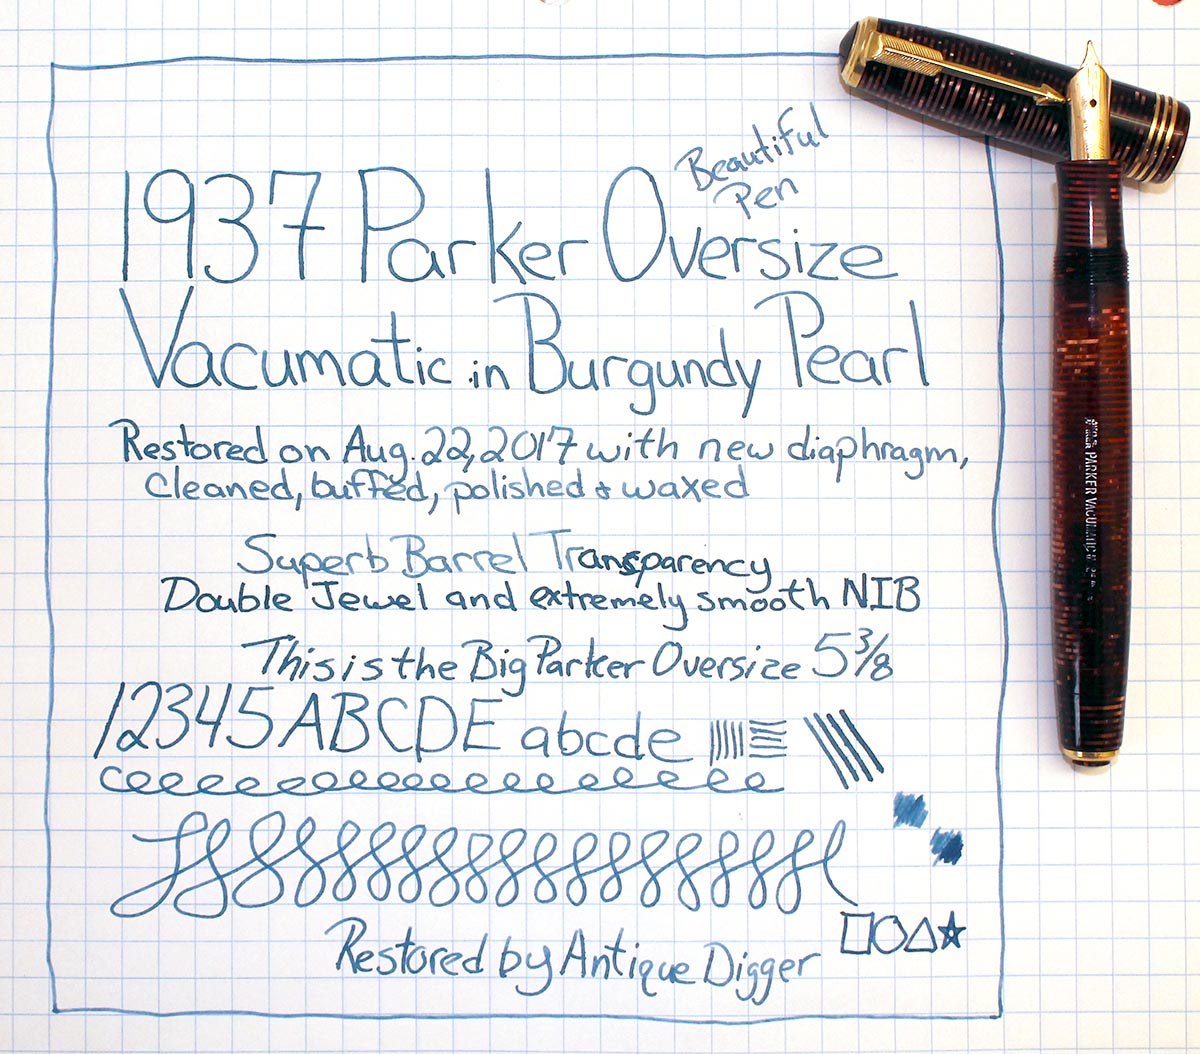 RESTORED 1937 PARKER BURGUNDY PEARL DOUBLE JEWEL VACUMATIC OVERSIZE FOUNTAIN PEN OFFERED BY ANTIQUE DIGGER